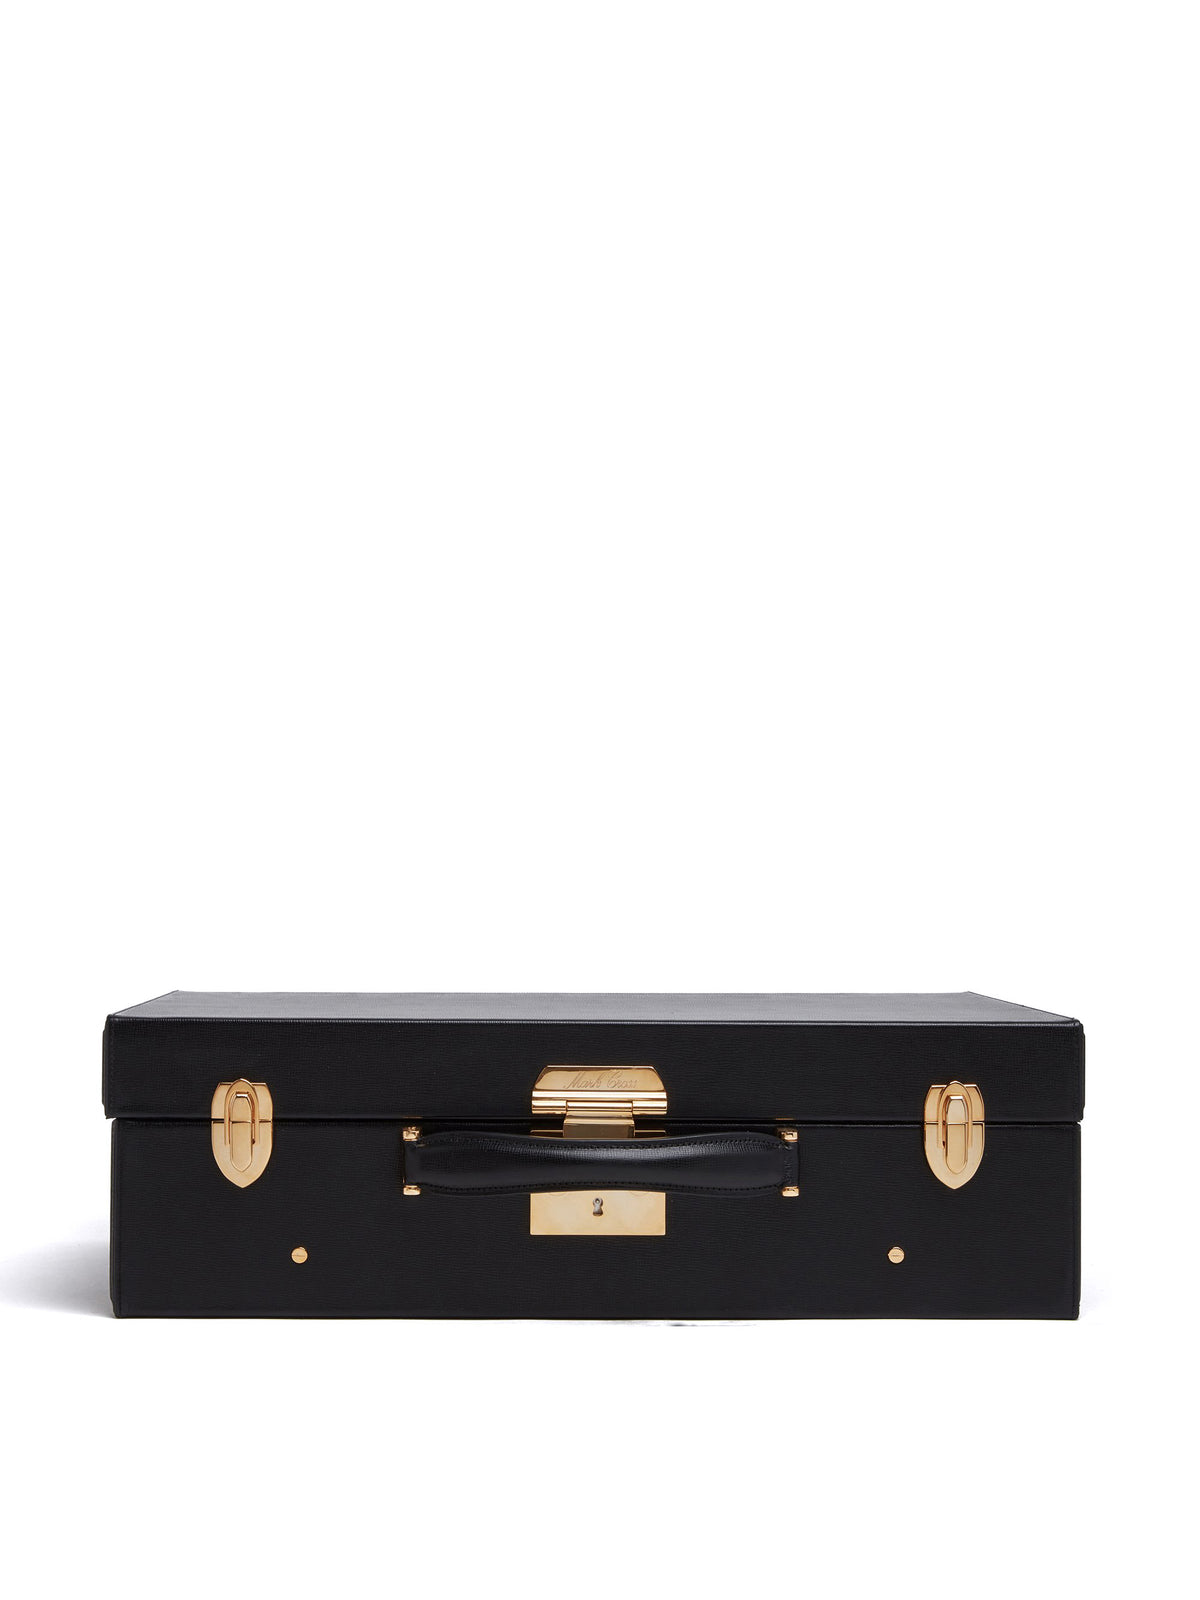 Mark Cross Grace Medium Leather Trunk Saffiano Black Side